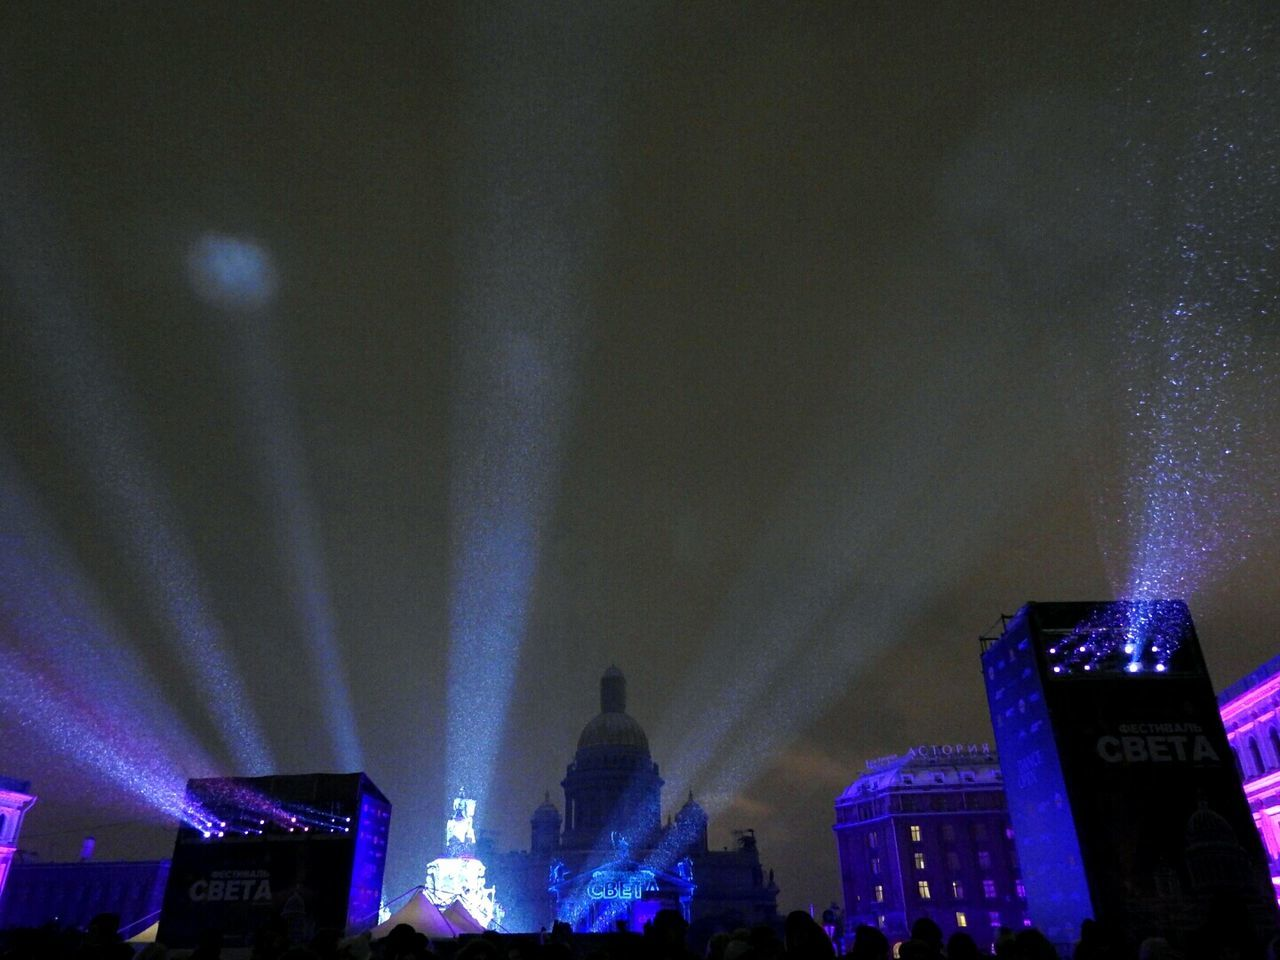 Lightshow Arts Culture And Entertainment Music Night Nightlife Illuminated 400,000 People St.isaak City Sankt-Petersburg Russia